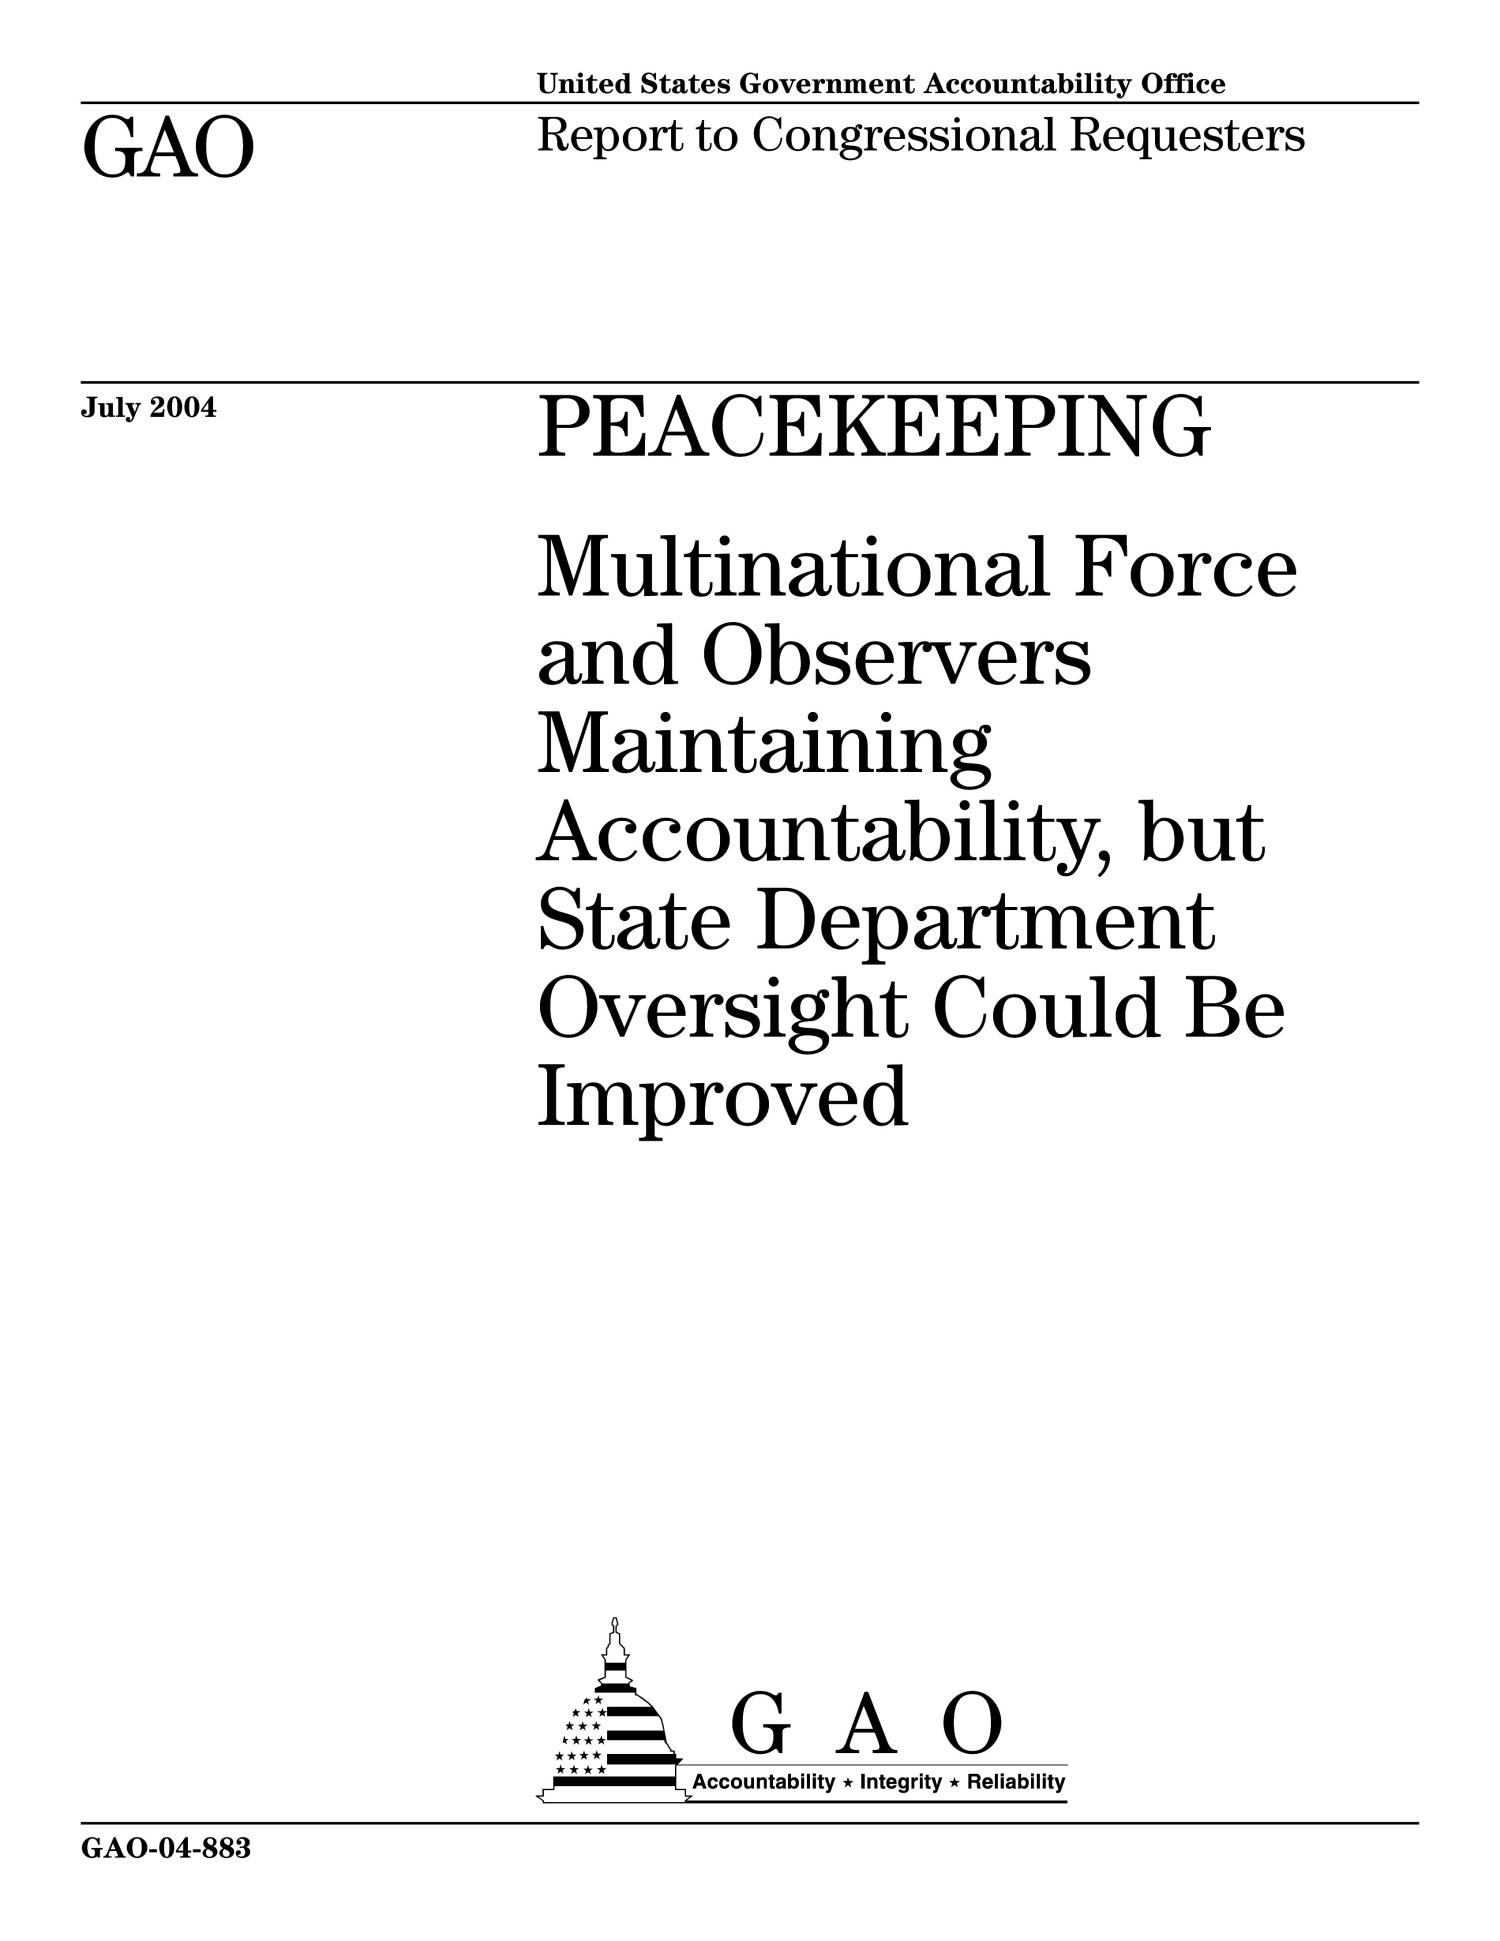 Peacekeeping: Multinational Force And Observers Maintaining Accountability, but State Department Oversight Could Be Improved                                                                                                      [Sequence #]: 1 of 67